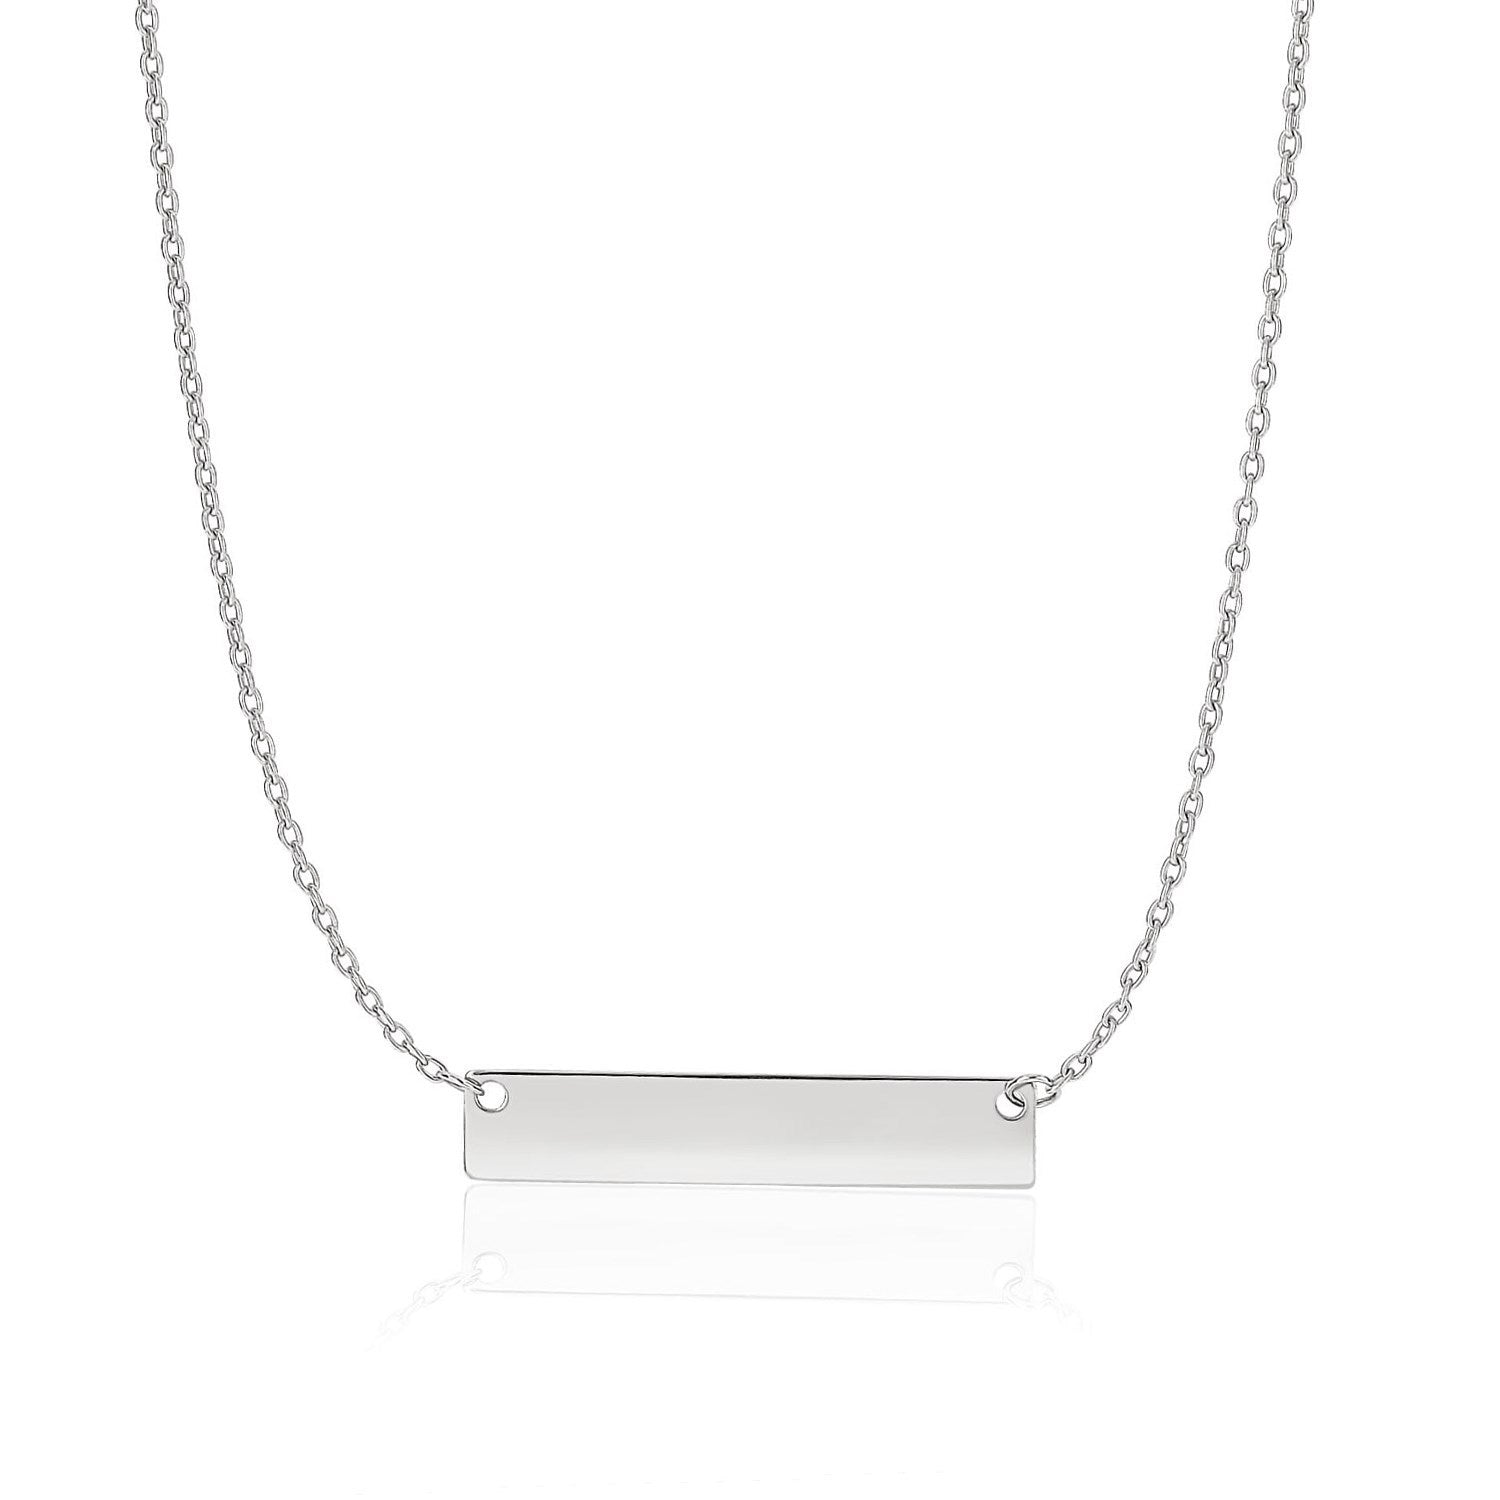 14k White Gold Smooth Flat Horizontal Bar Style Necklace